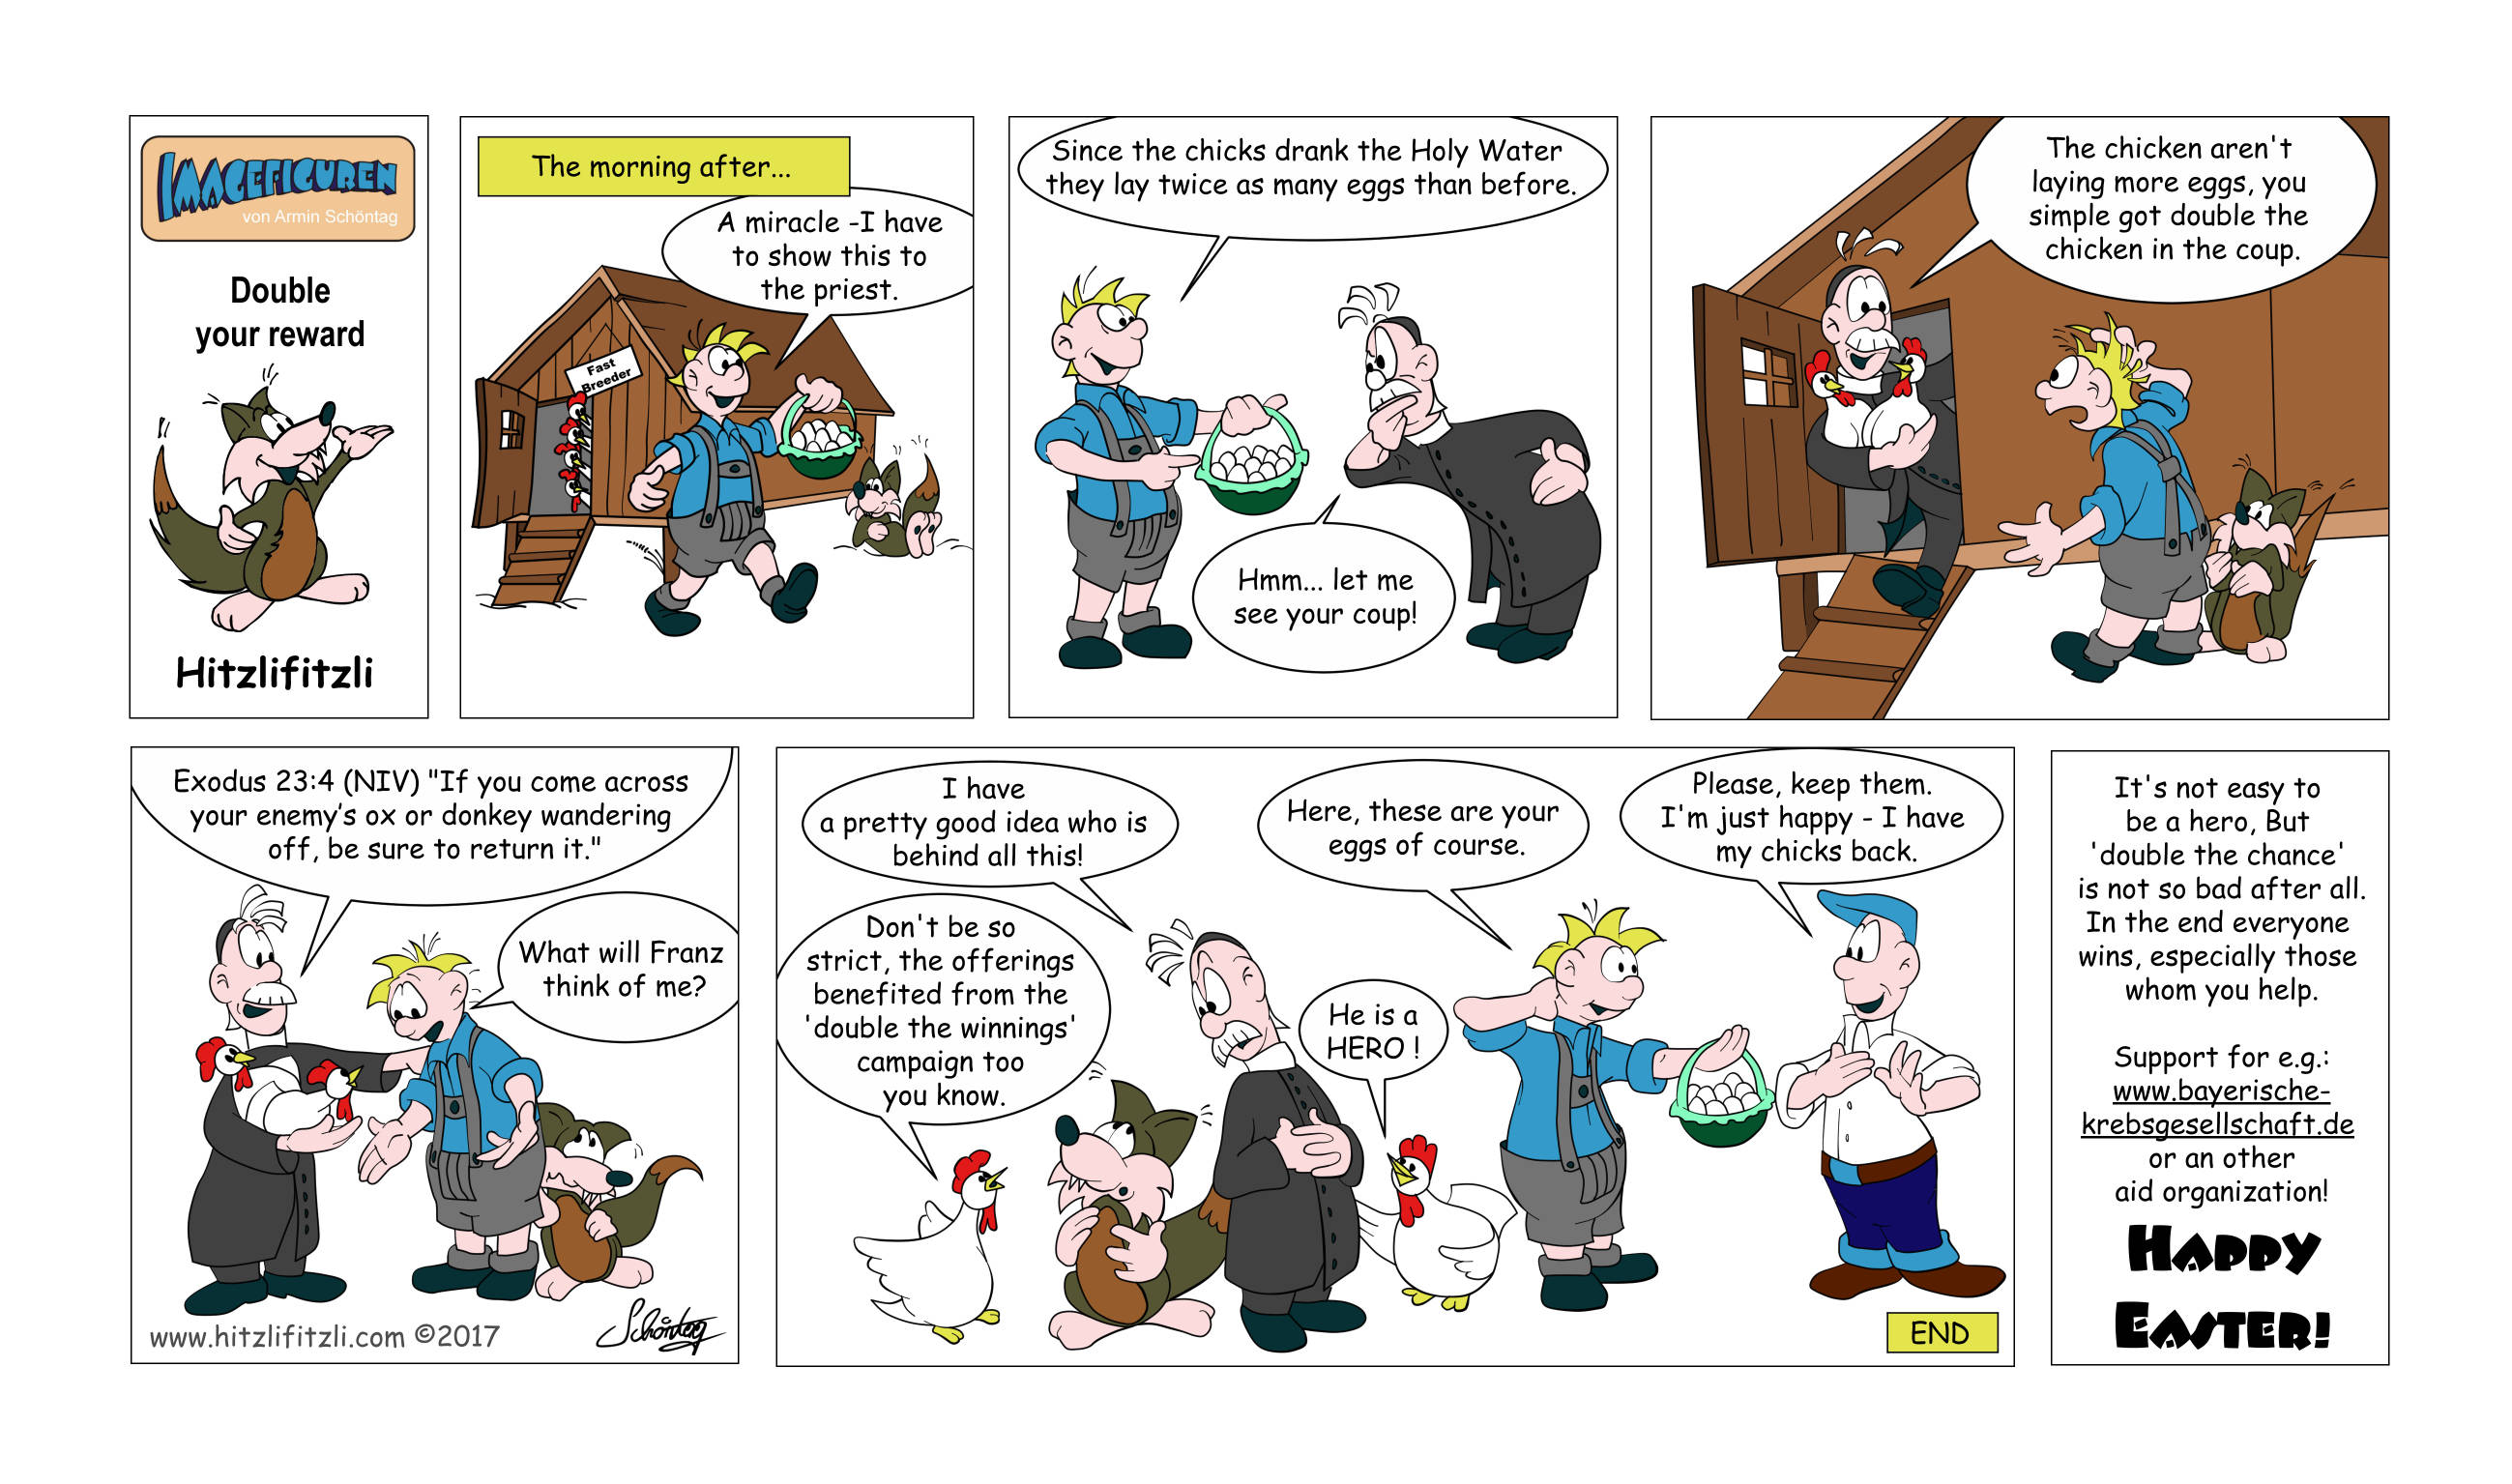 Hitzlifitzli-Comic: Max thinks it is a miracle, he has twice as many eggs than before since the chicken drank the Holy Water. But the priest checks his coop an he finds the hidden chicken. His advice to Max is to give the chicken back to Franz. And Franz is happy to have his chicken back. The priest now has a pretty good idea who is behind all of this. But the chicken reply he should not be strict with Benny in this case - because there is more money in the offerings.